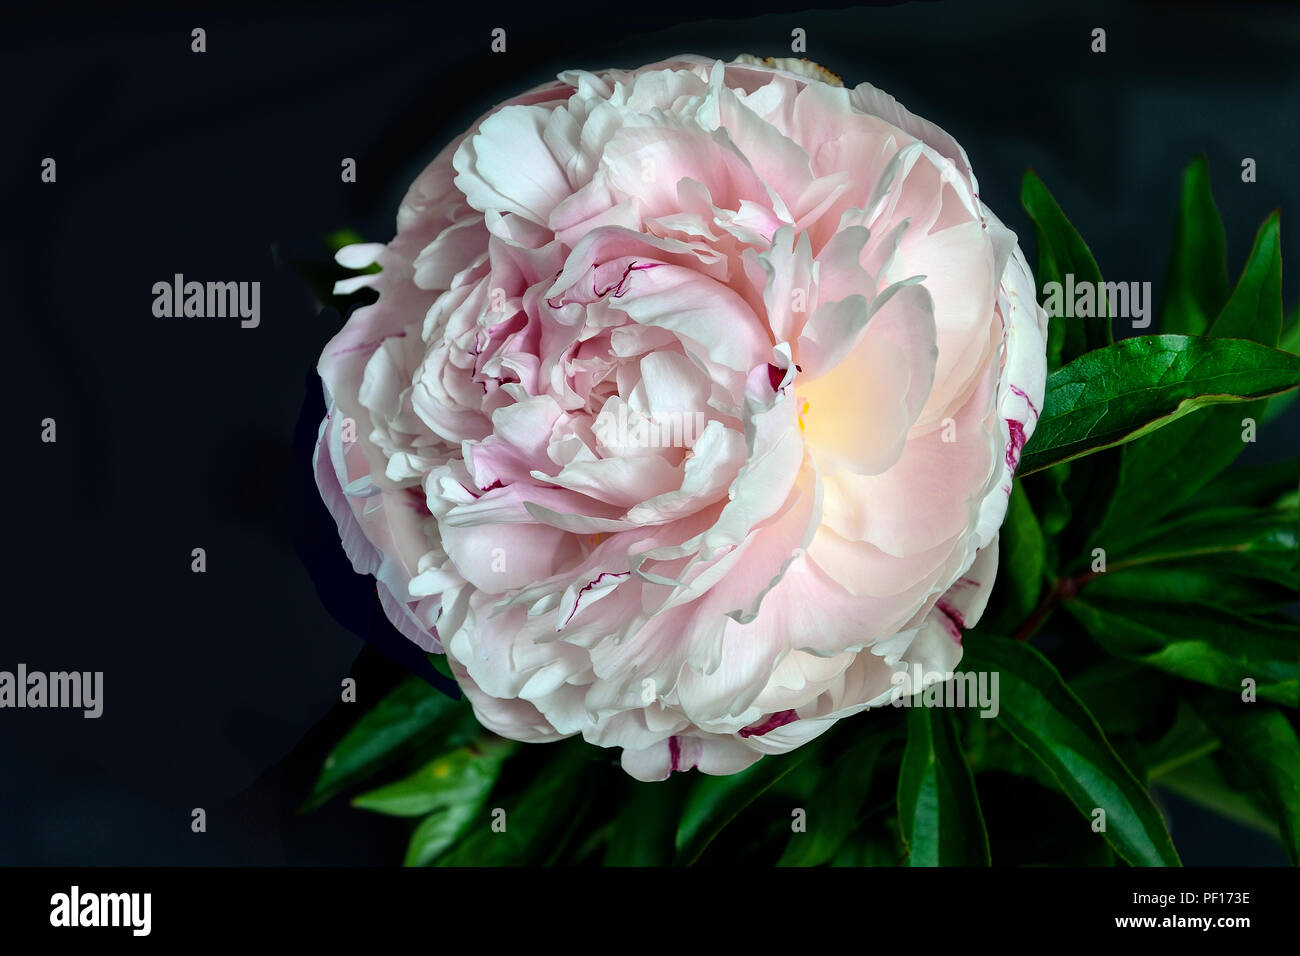 Beautiful gentle white-pink peony close up on a black background isolated with green leaves. Flowers with delicate petals and delicate aroma. Concept  - Stock Image